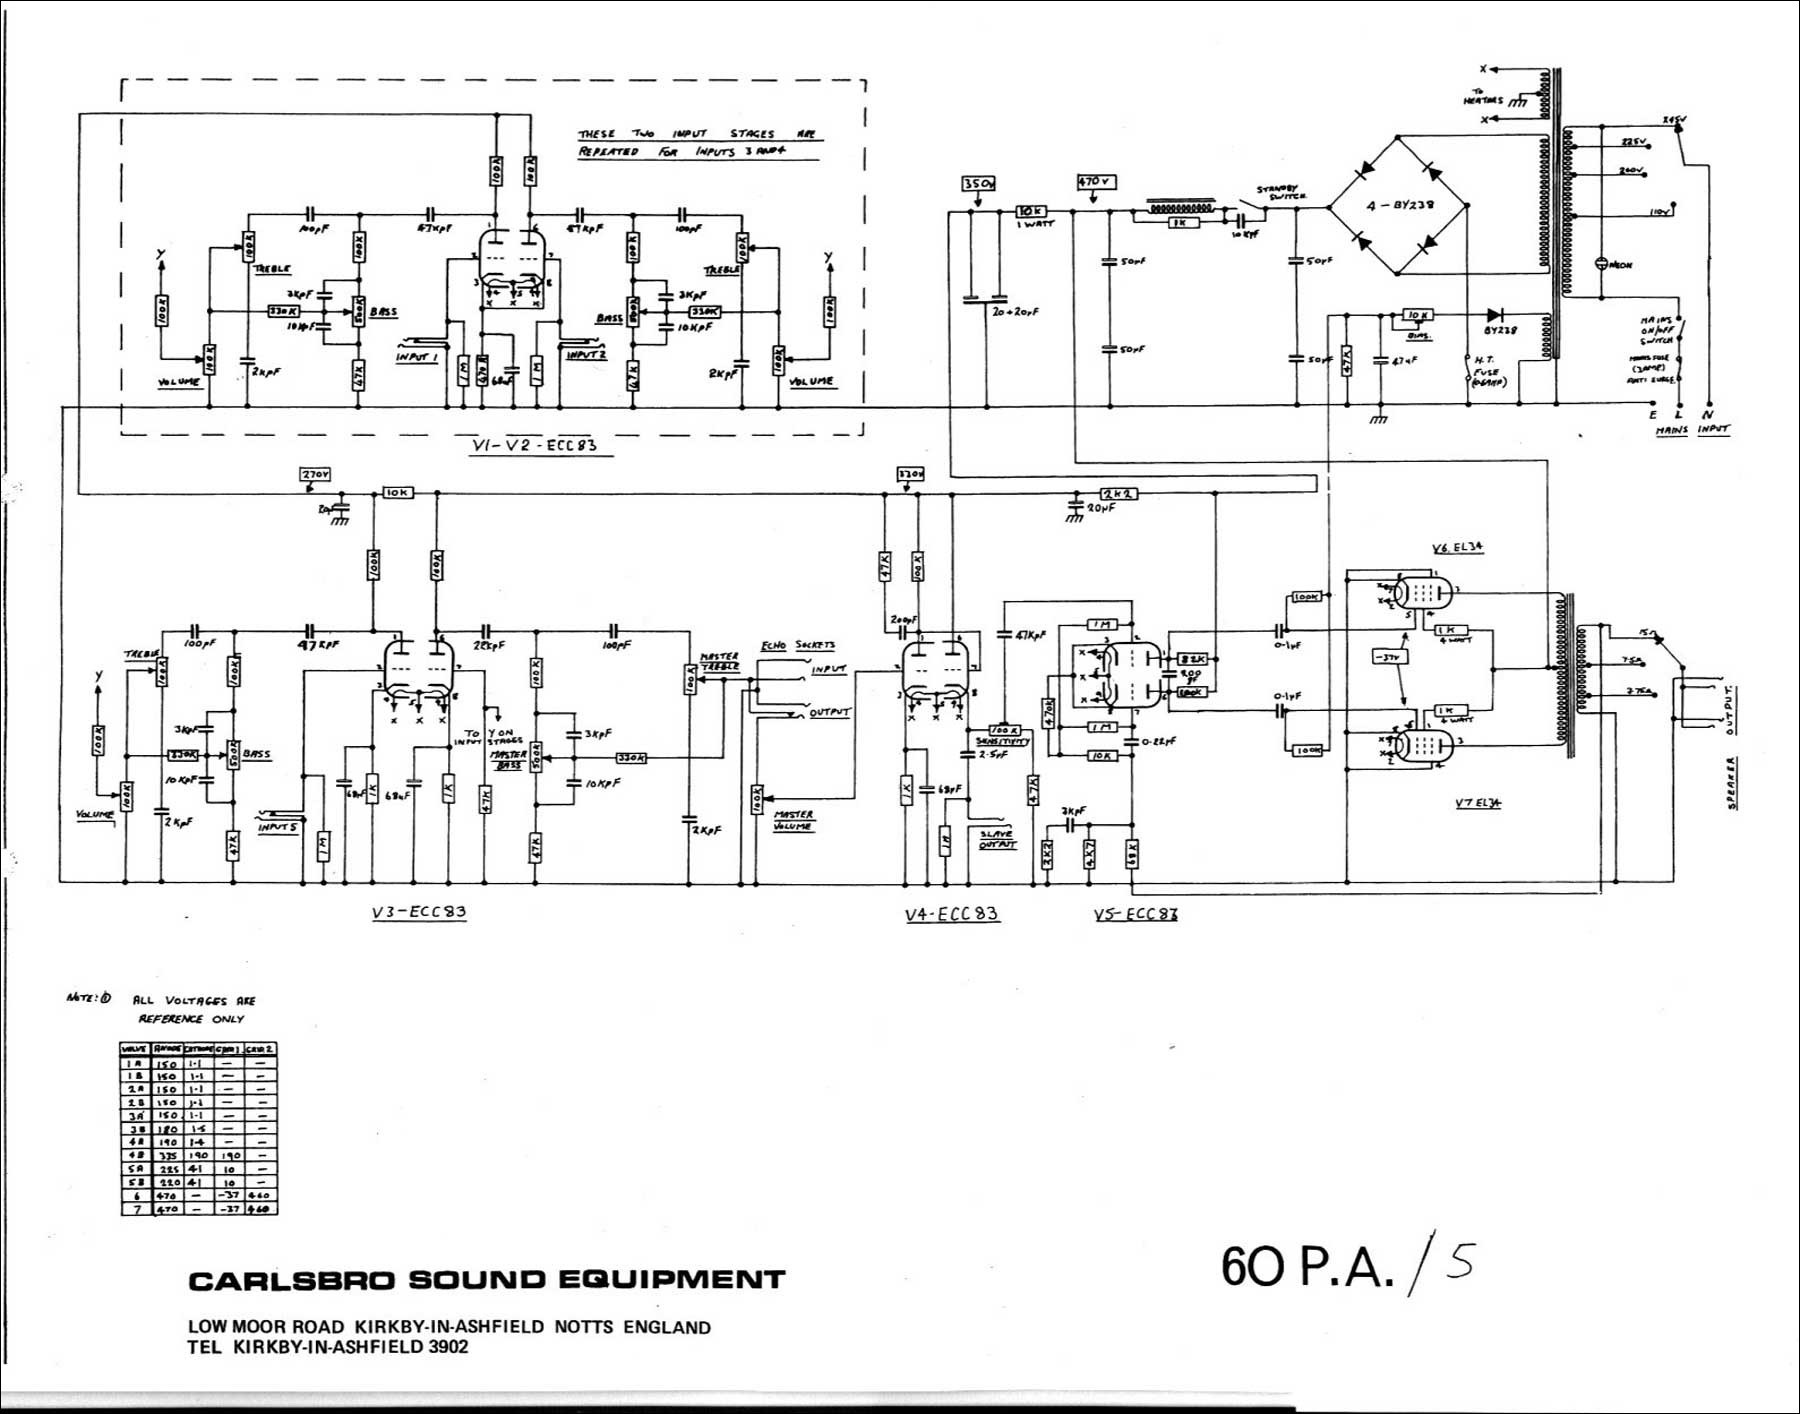 Peavey Bass Guitar Wiring Diagram Custom Project Free Download Gsr205 Wire Contemporary Diagrams Adornment Electrical